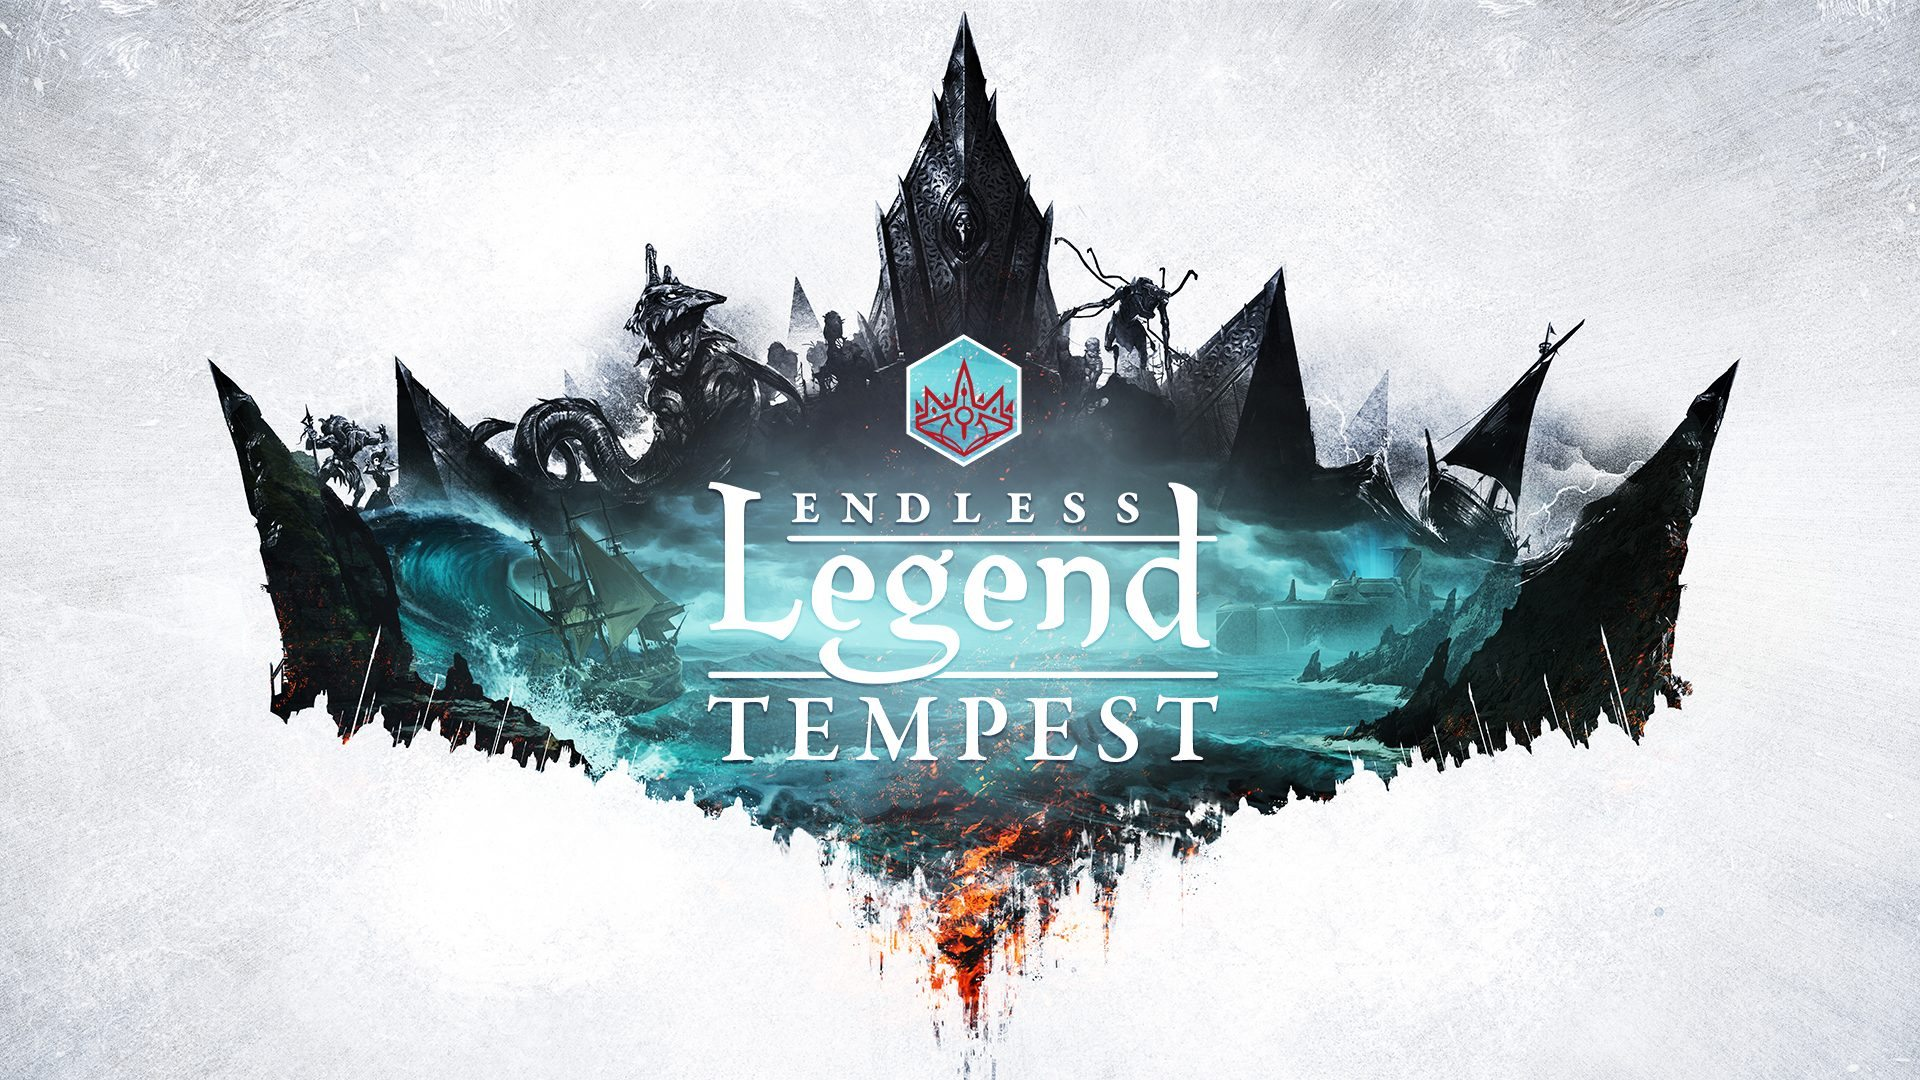 Endless Legend Tempest Expansion Announced by Amplitude Studios